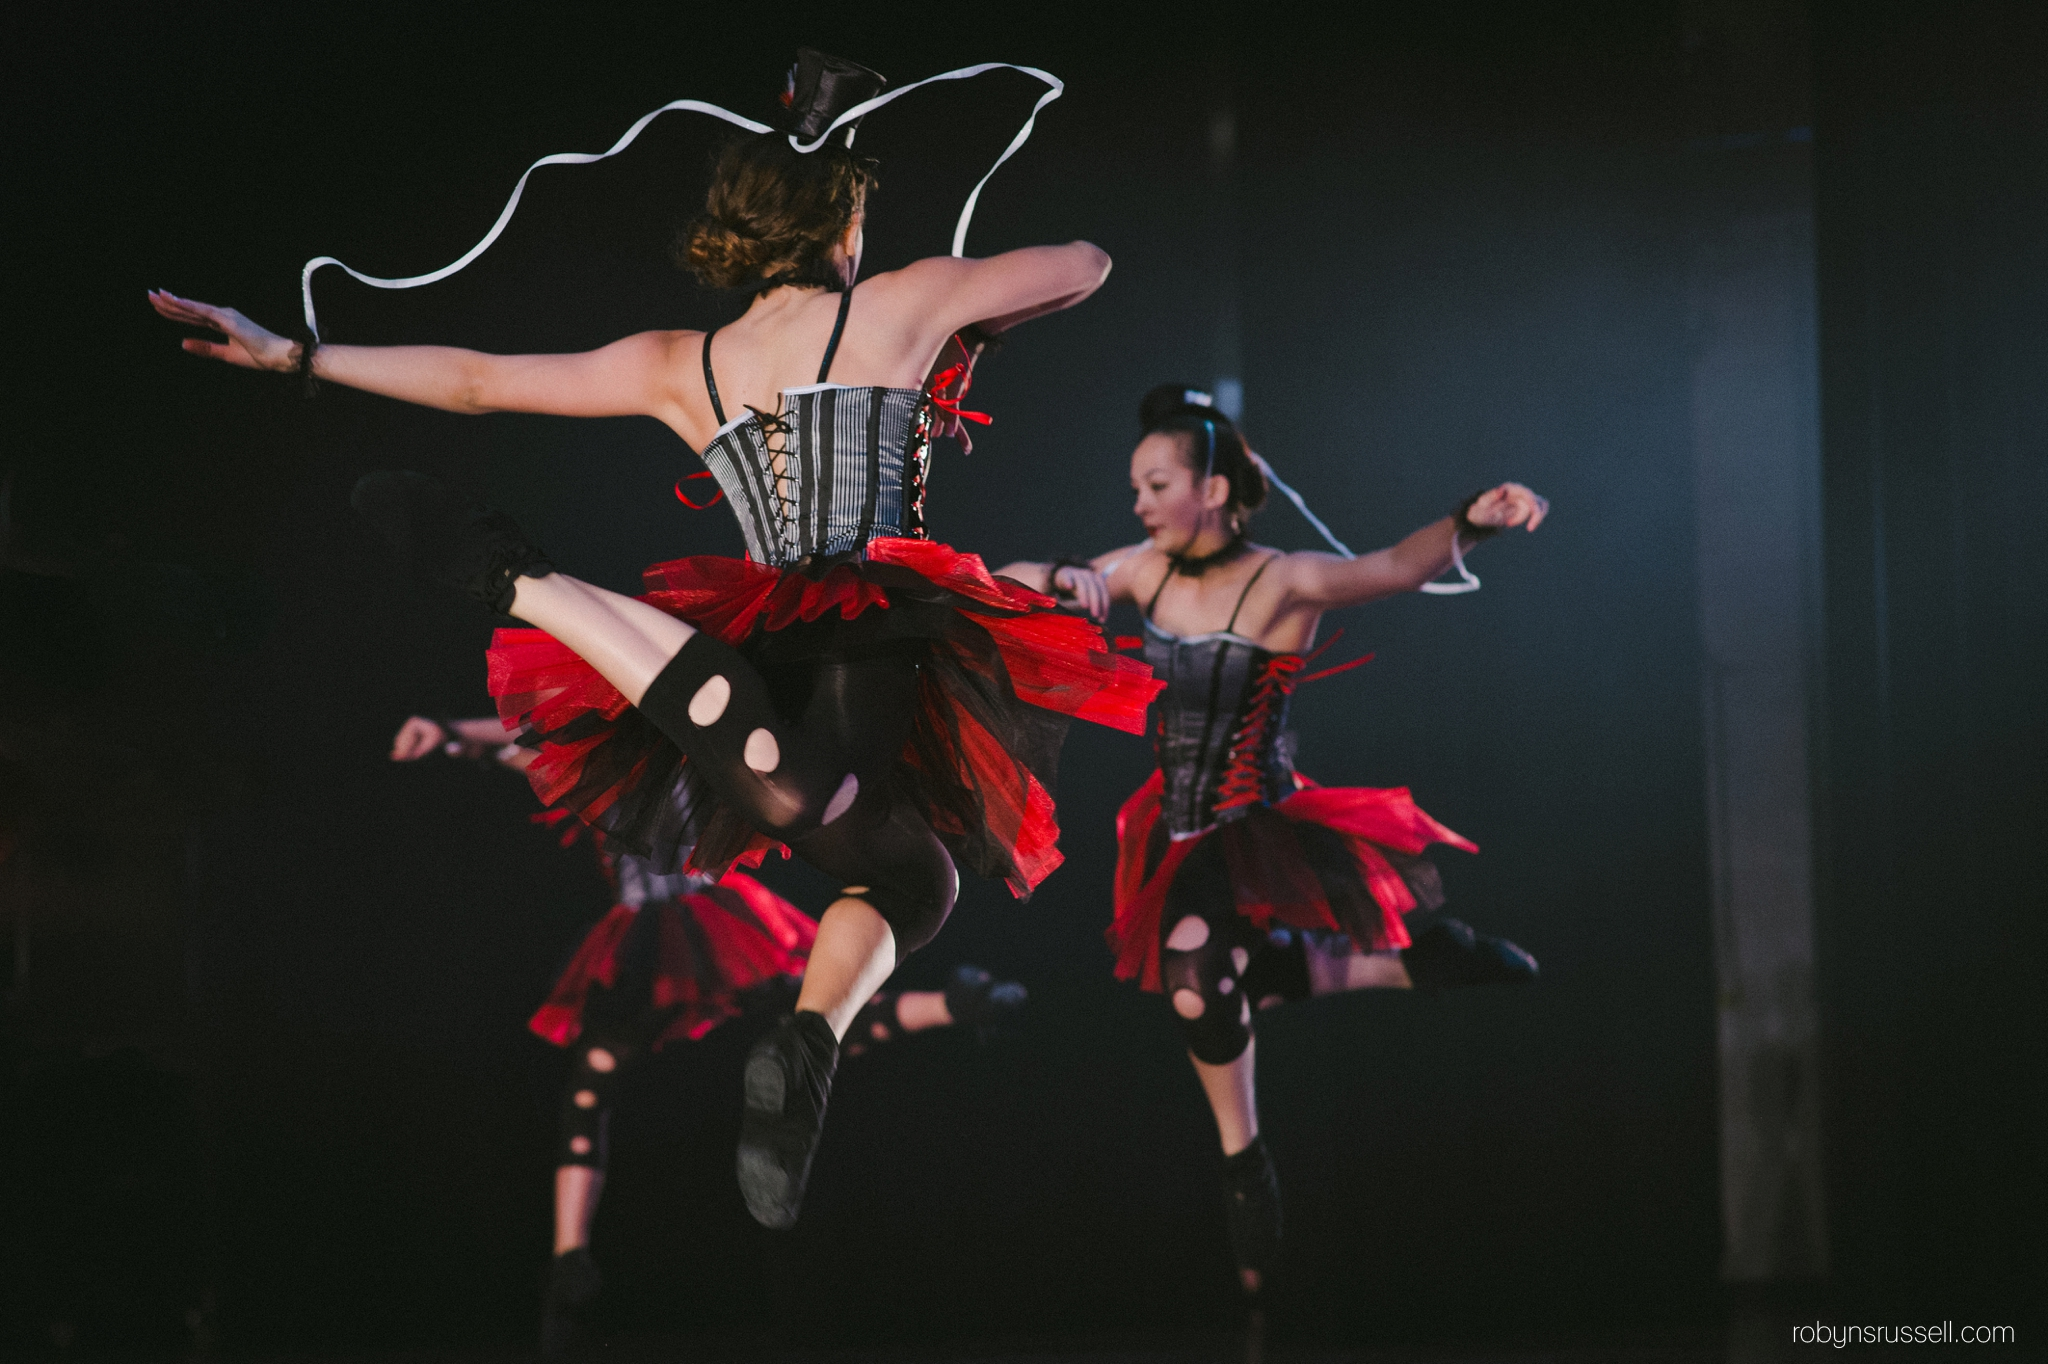 33-leaping-in-air-bdc-rehearsals.jpg